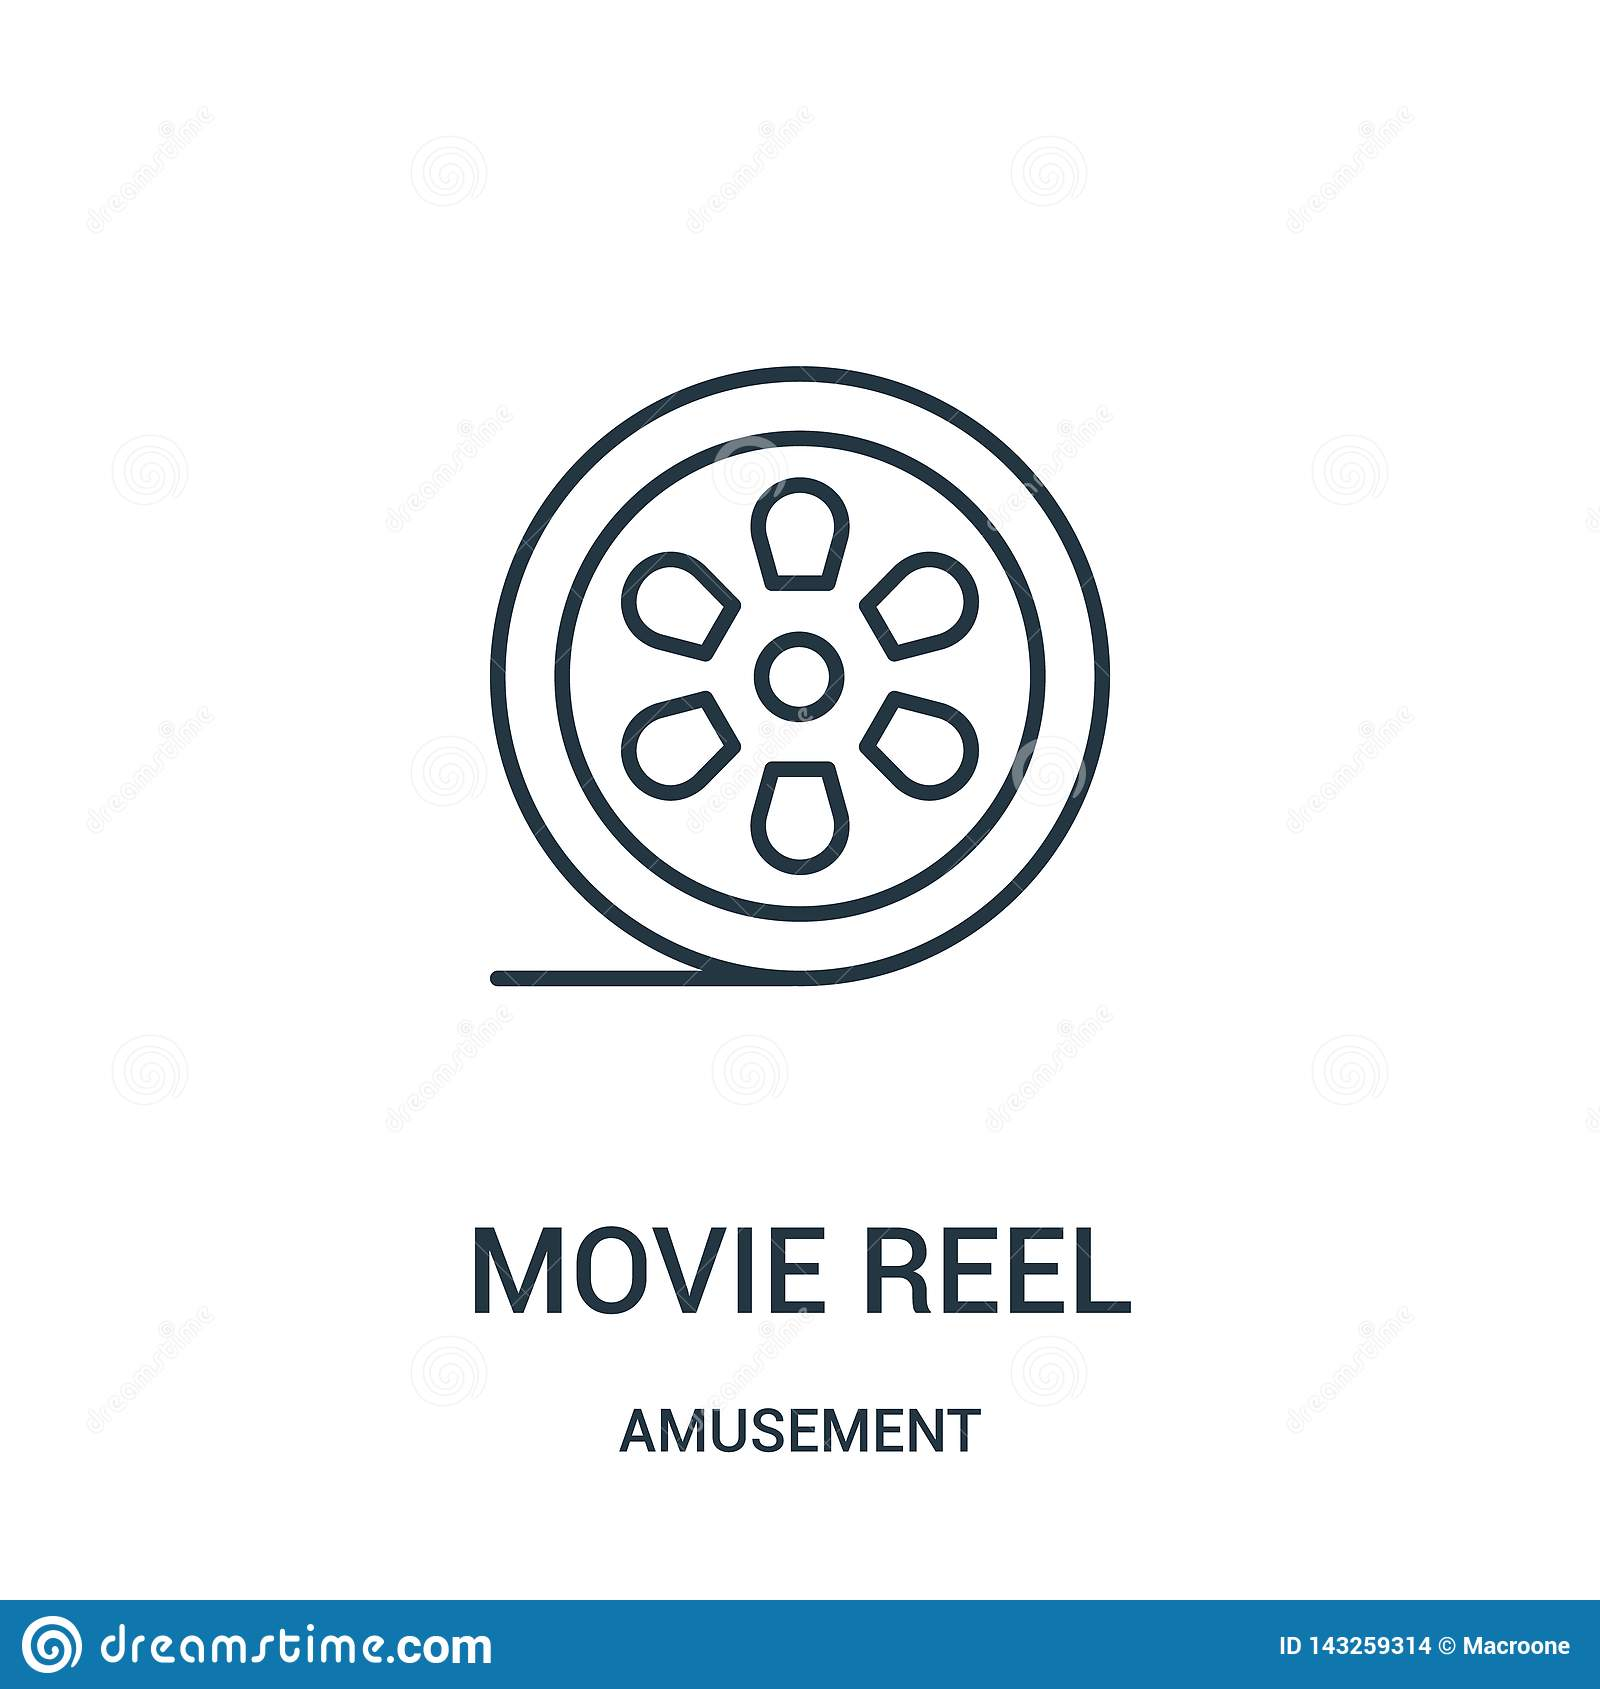 movie reel icon vector from amusement collection. Thin line movie reel outline icon vector illustration